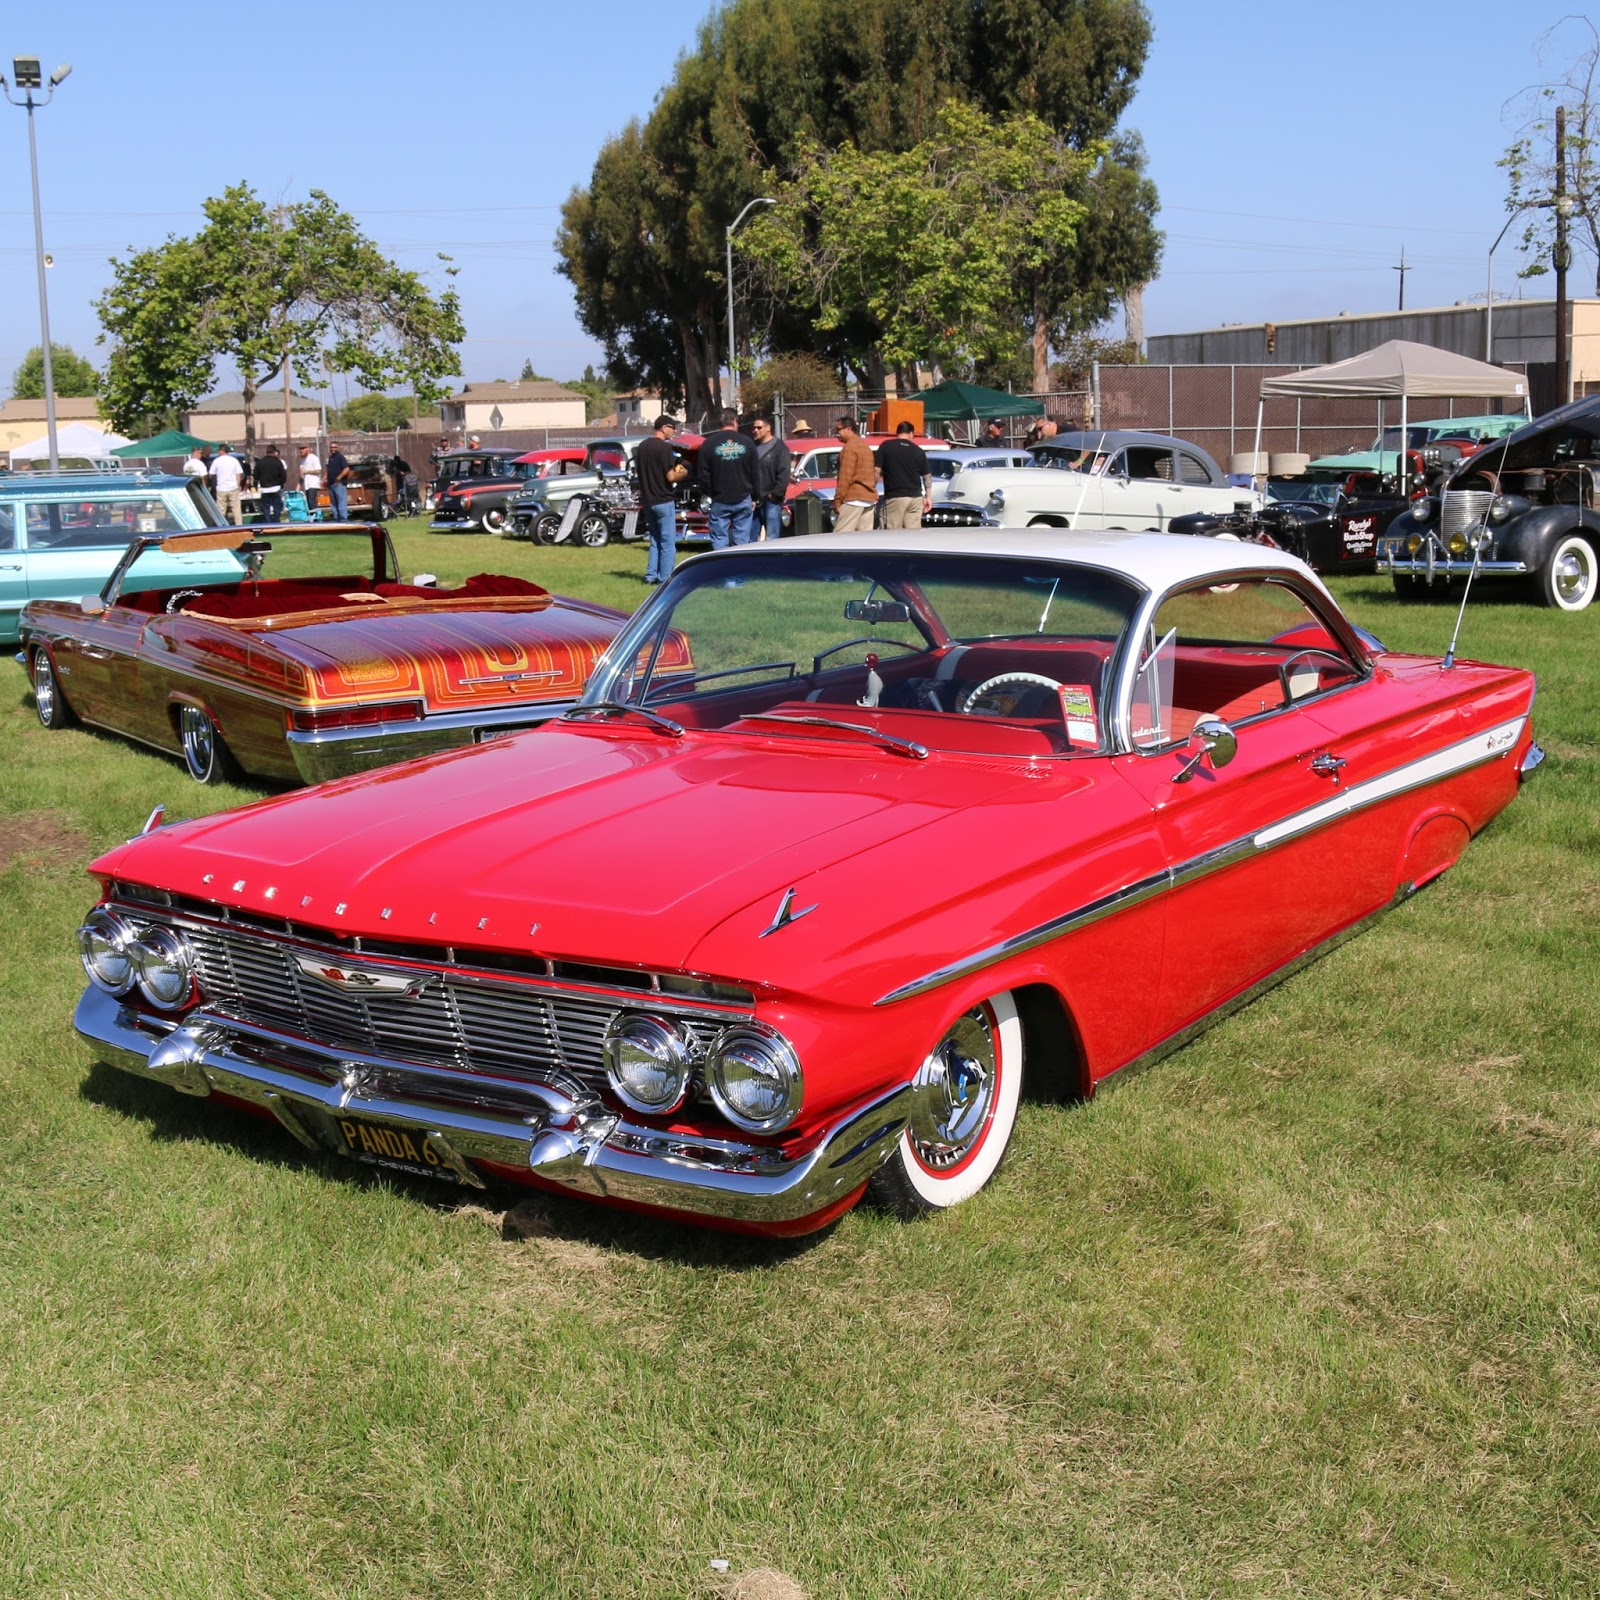 Santa Maria Chevrolet: Covering Classic Cars : 35th Annual West Coast Kustoms